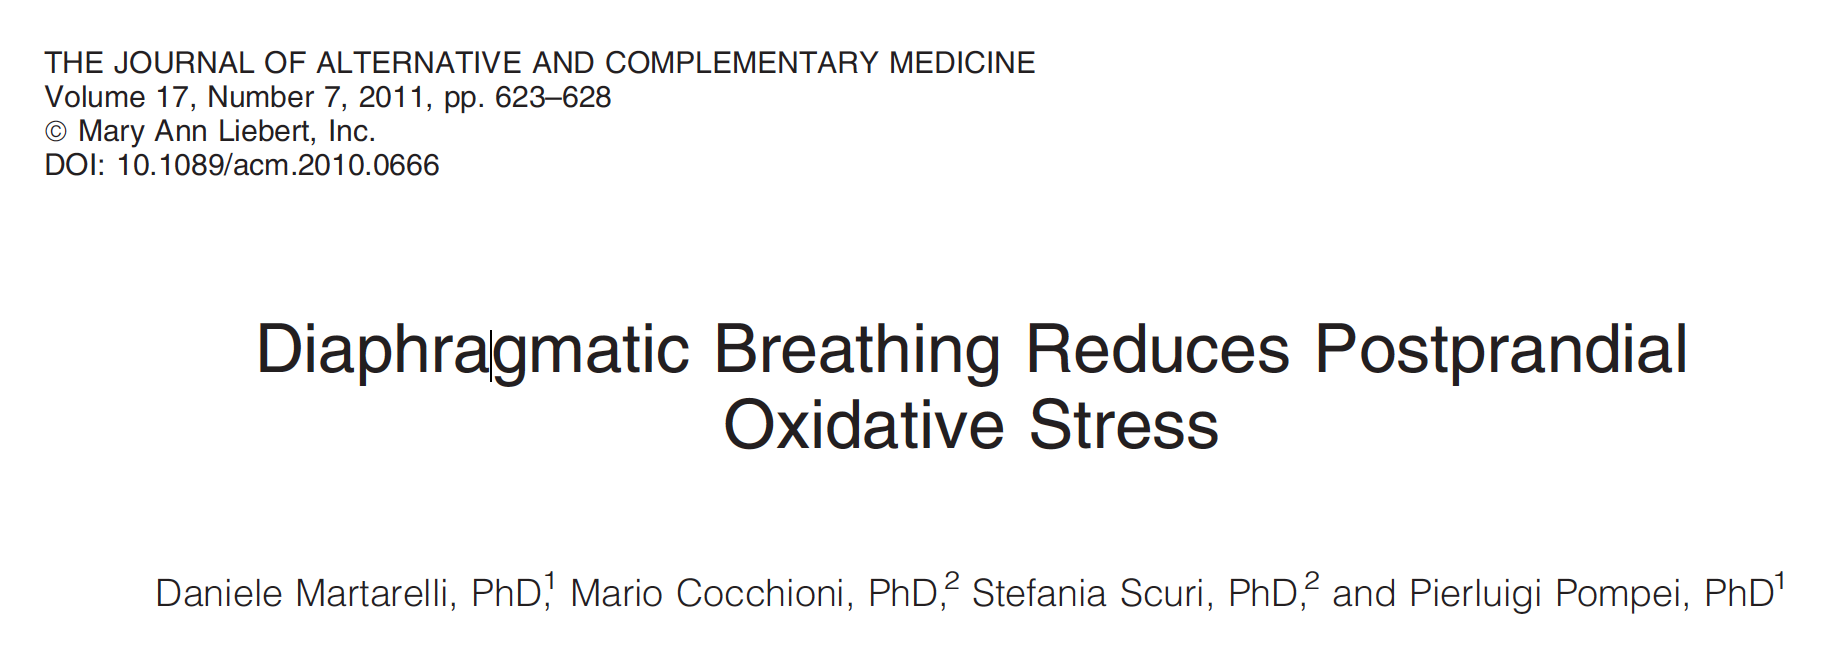 - Diaphragmatic breathing increases insulin, lowers blood sugar, and reduces oxidative stress